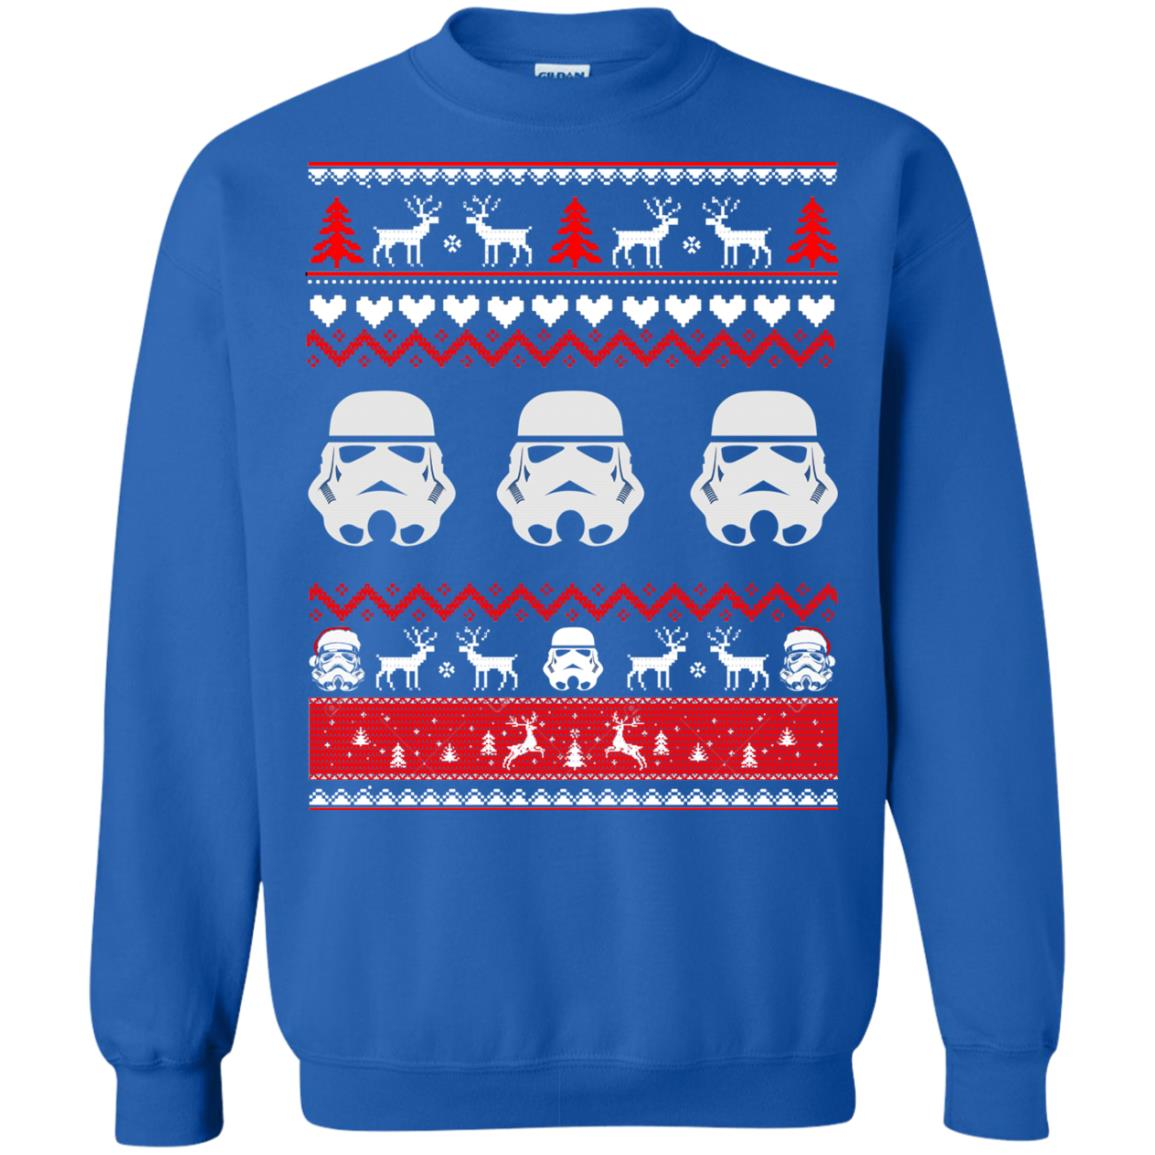 image 1732 - Stormtrooper Star Wars Ugly Christmas Sweatshirt, Shirt